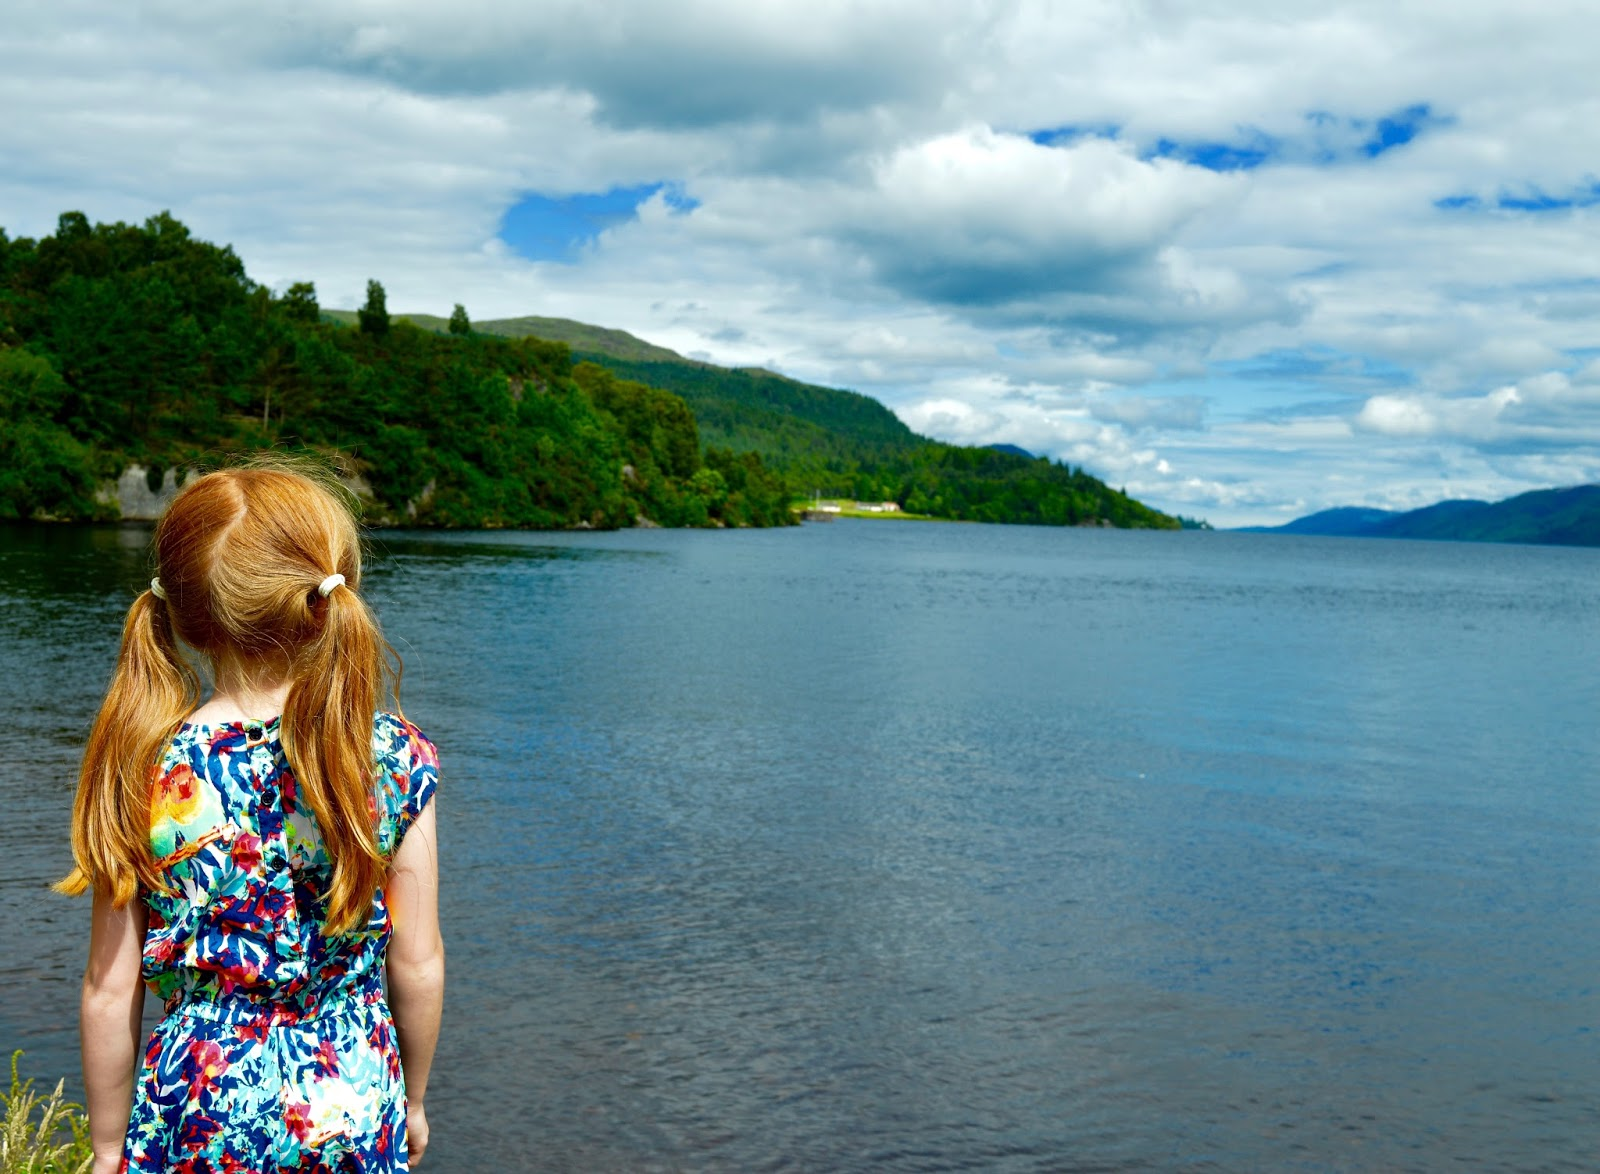 Hunting For The Loch Ness Monster